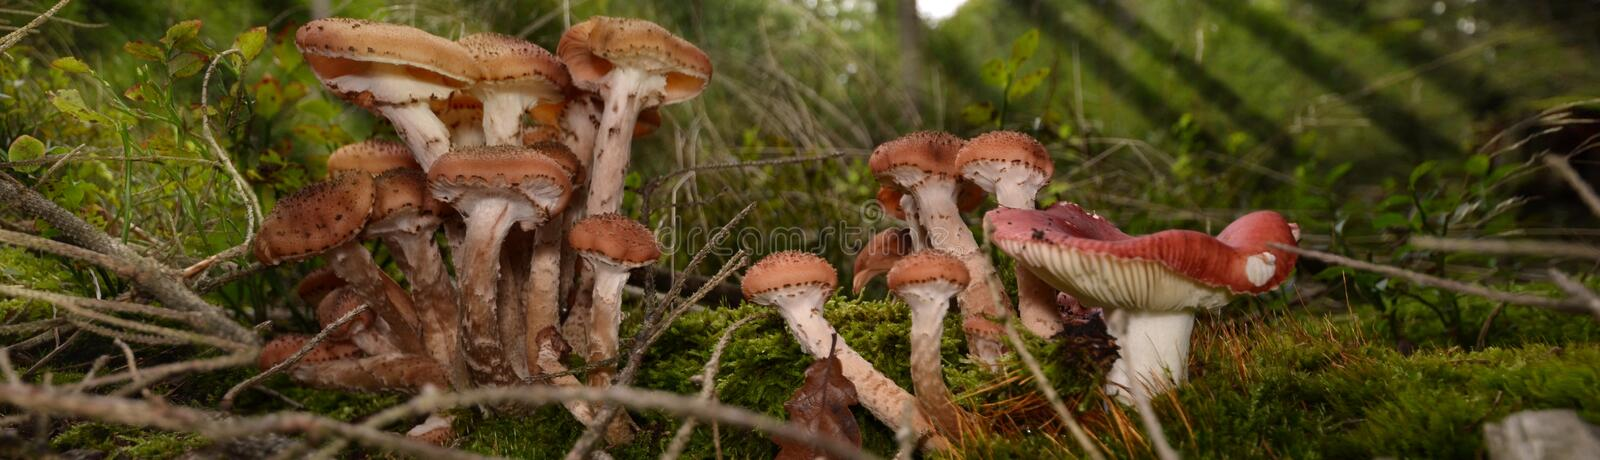 Mushrooms forest gather boletus chanterelle moss magical. Small mushrooms in autum forest on ground royalty free stock photo